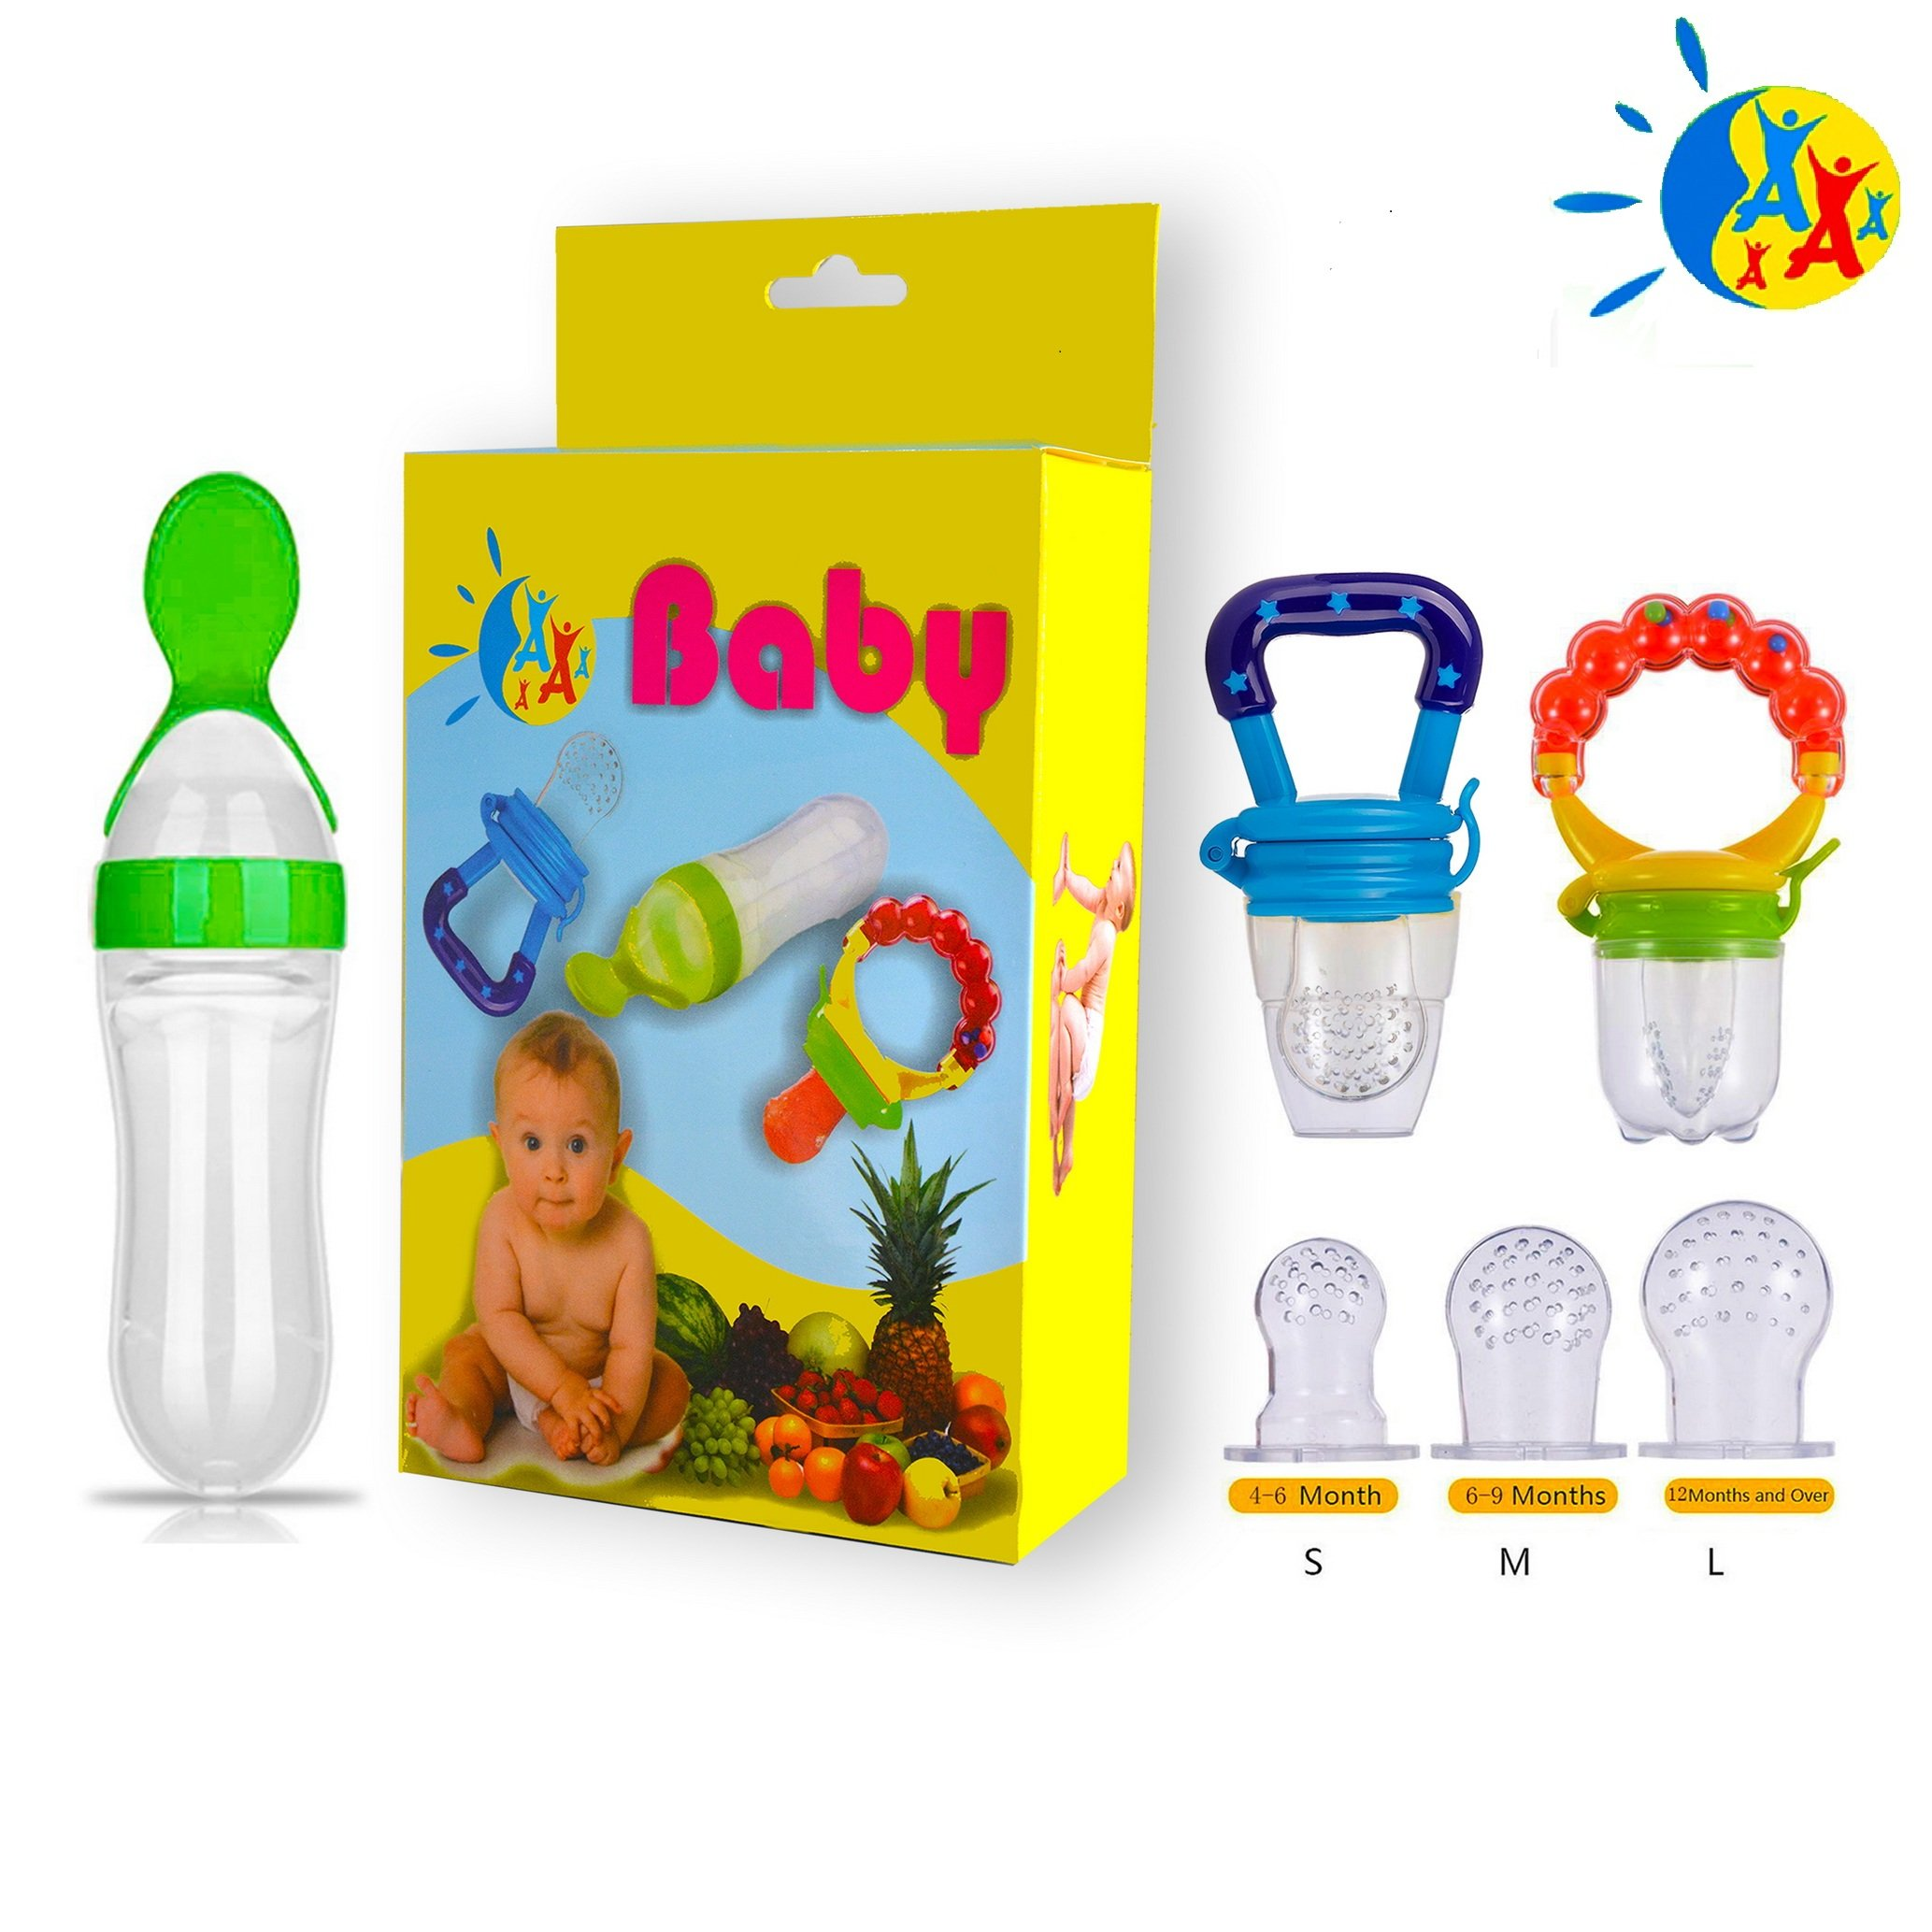 Baby Food Feeder Fresh Fruit Nibbler Squeeze Bottle Spoon Hygienic Cover Newborn Teeth Pacifier with Soothe Meshes Extra All Sizes Silicone Pouches Solid Nipple for Kids Toddlers Infants Teething